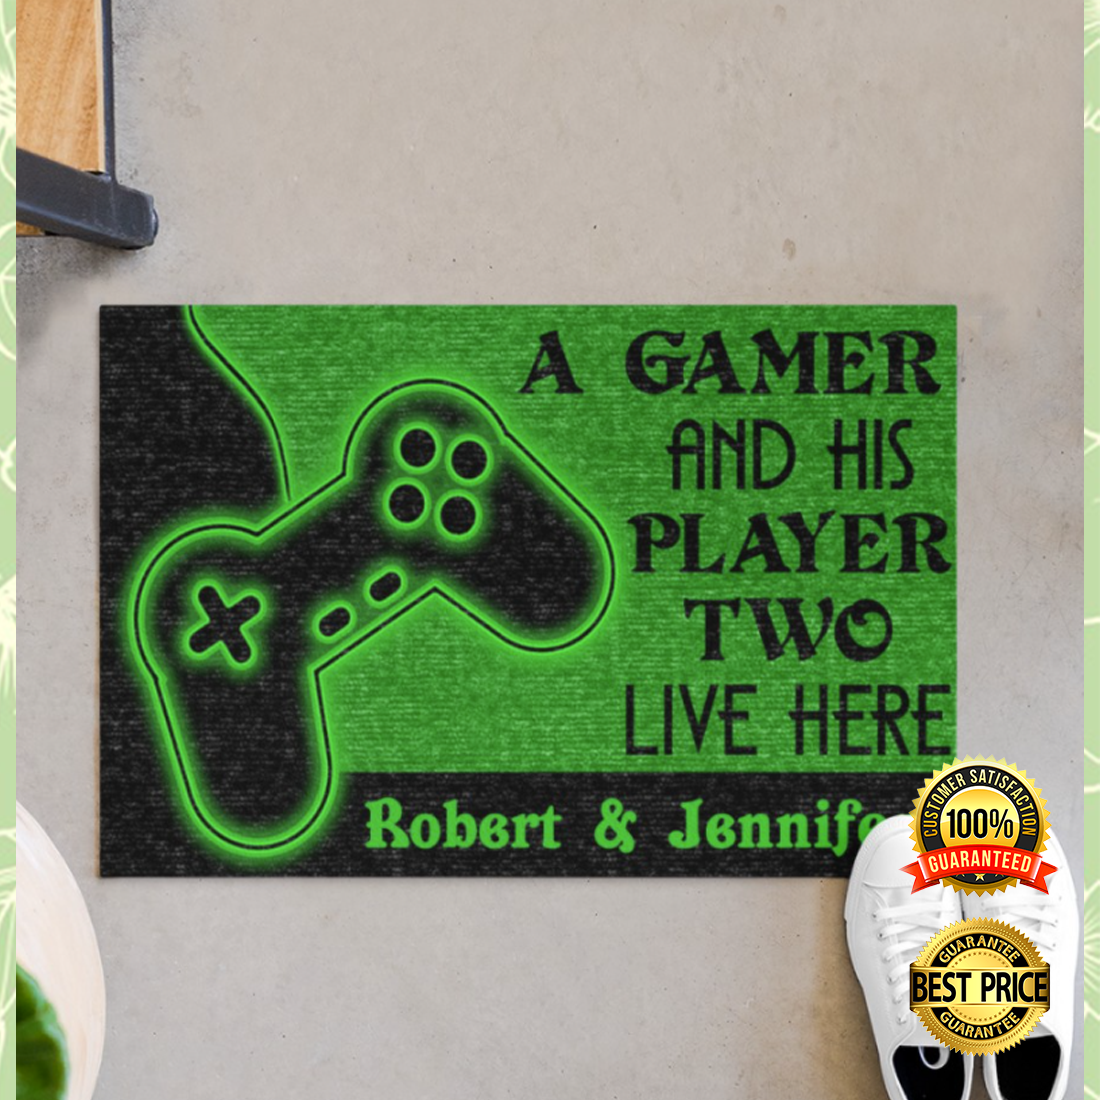 [NEW] PERRSONALIZED A GAMER AND HIS PLAYER TWO LIVE HERE DOORMAT